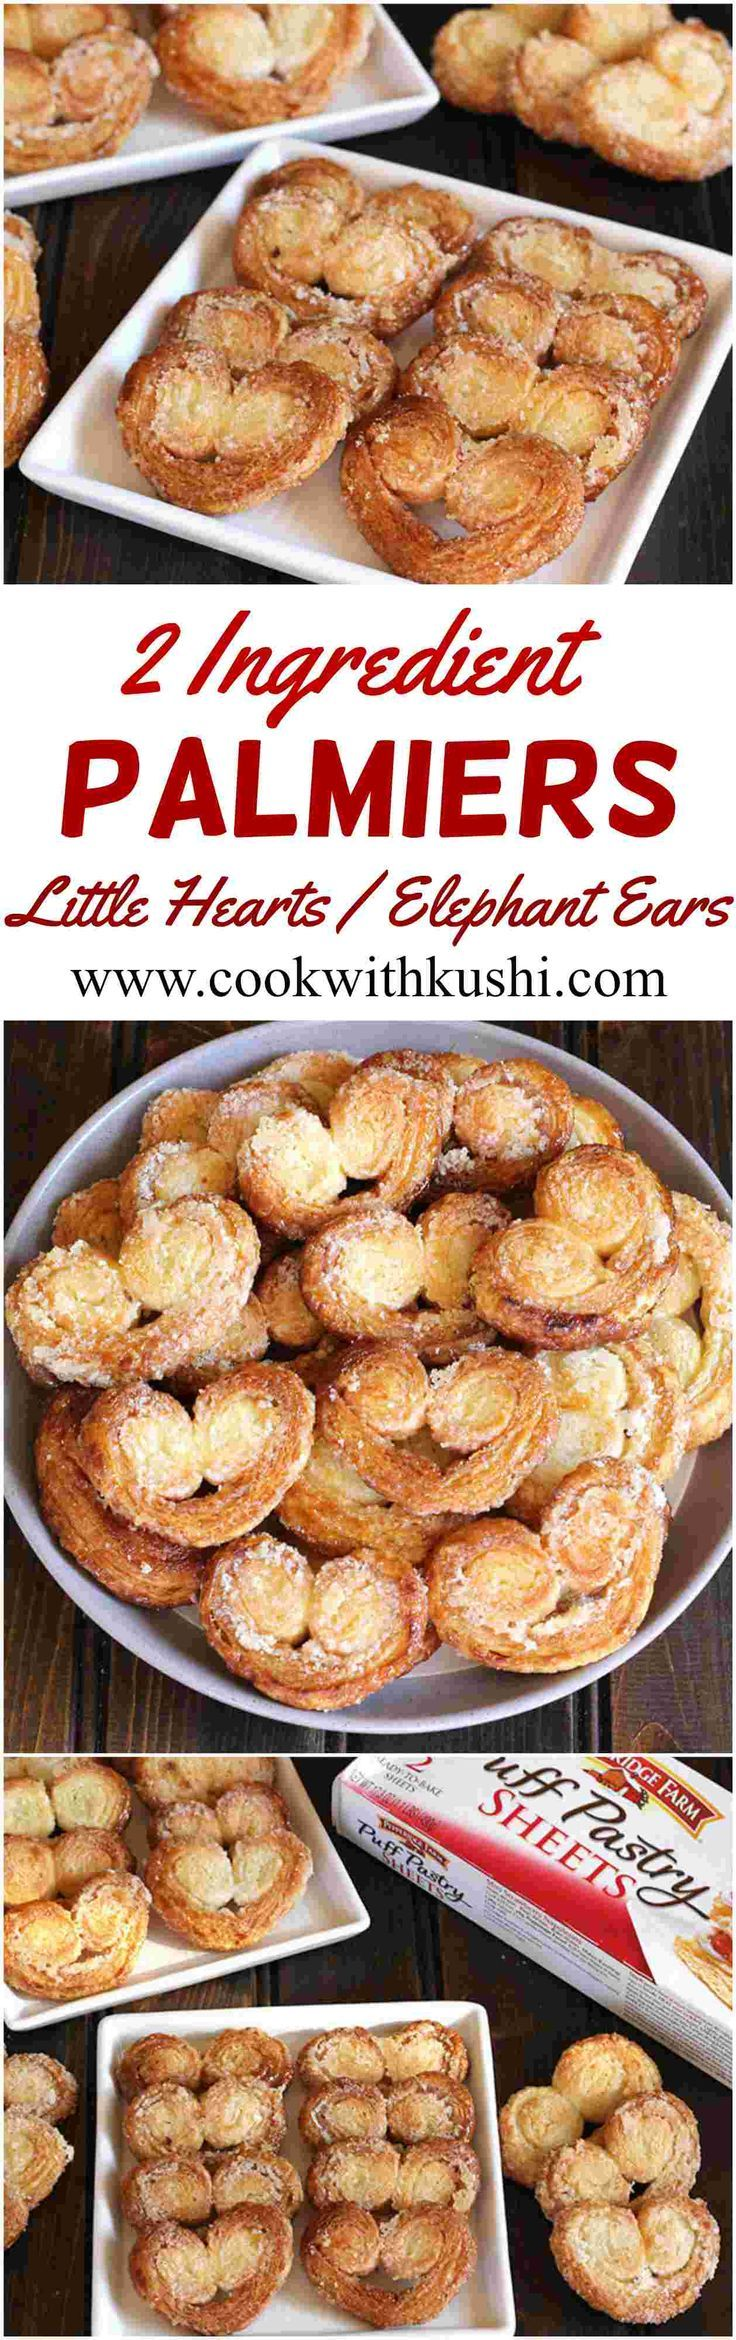 Palmiers or Little Hearts or Elephant ears are irresistibly delicious, melt in mouth crispy and flaky biscuits prepared using only 2 ingredients. These biscuits brought back many sweet memories from my childhood :-) #vegan #biscuit #appetizer #snack #vega